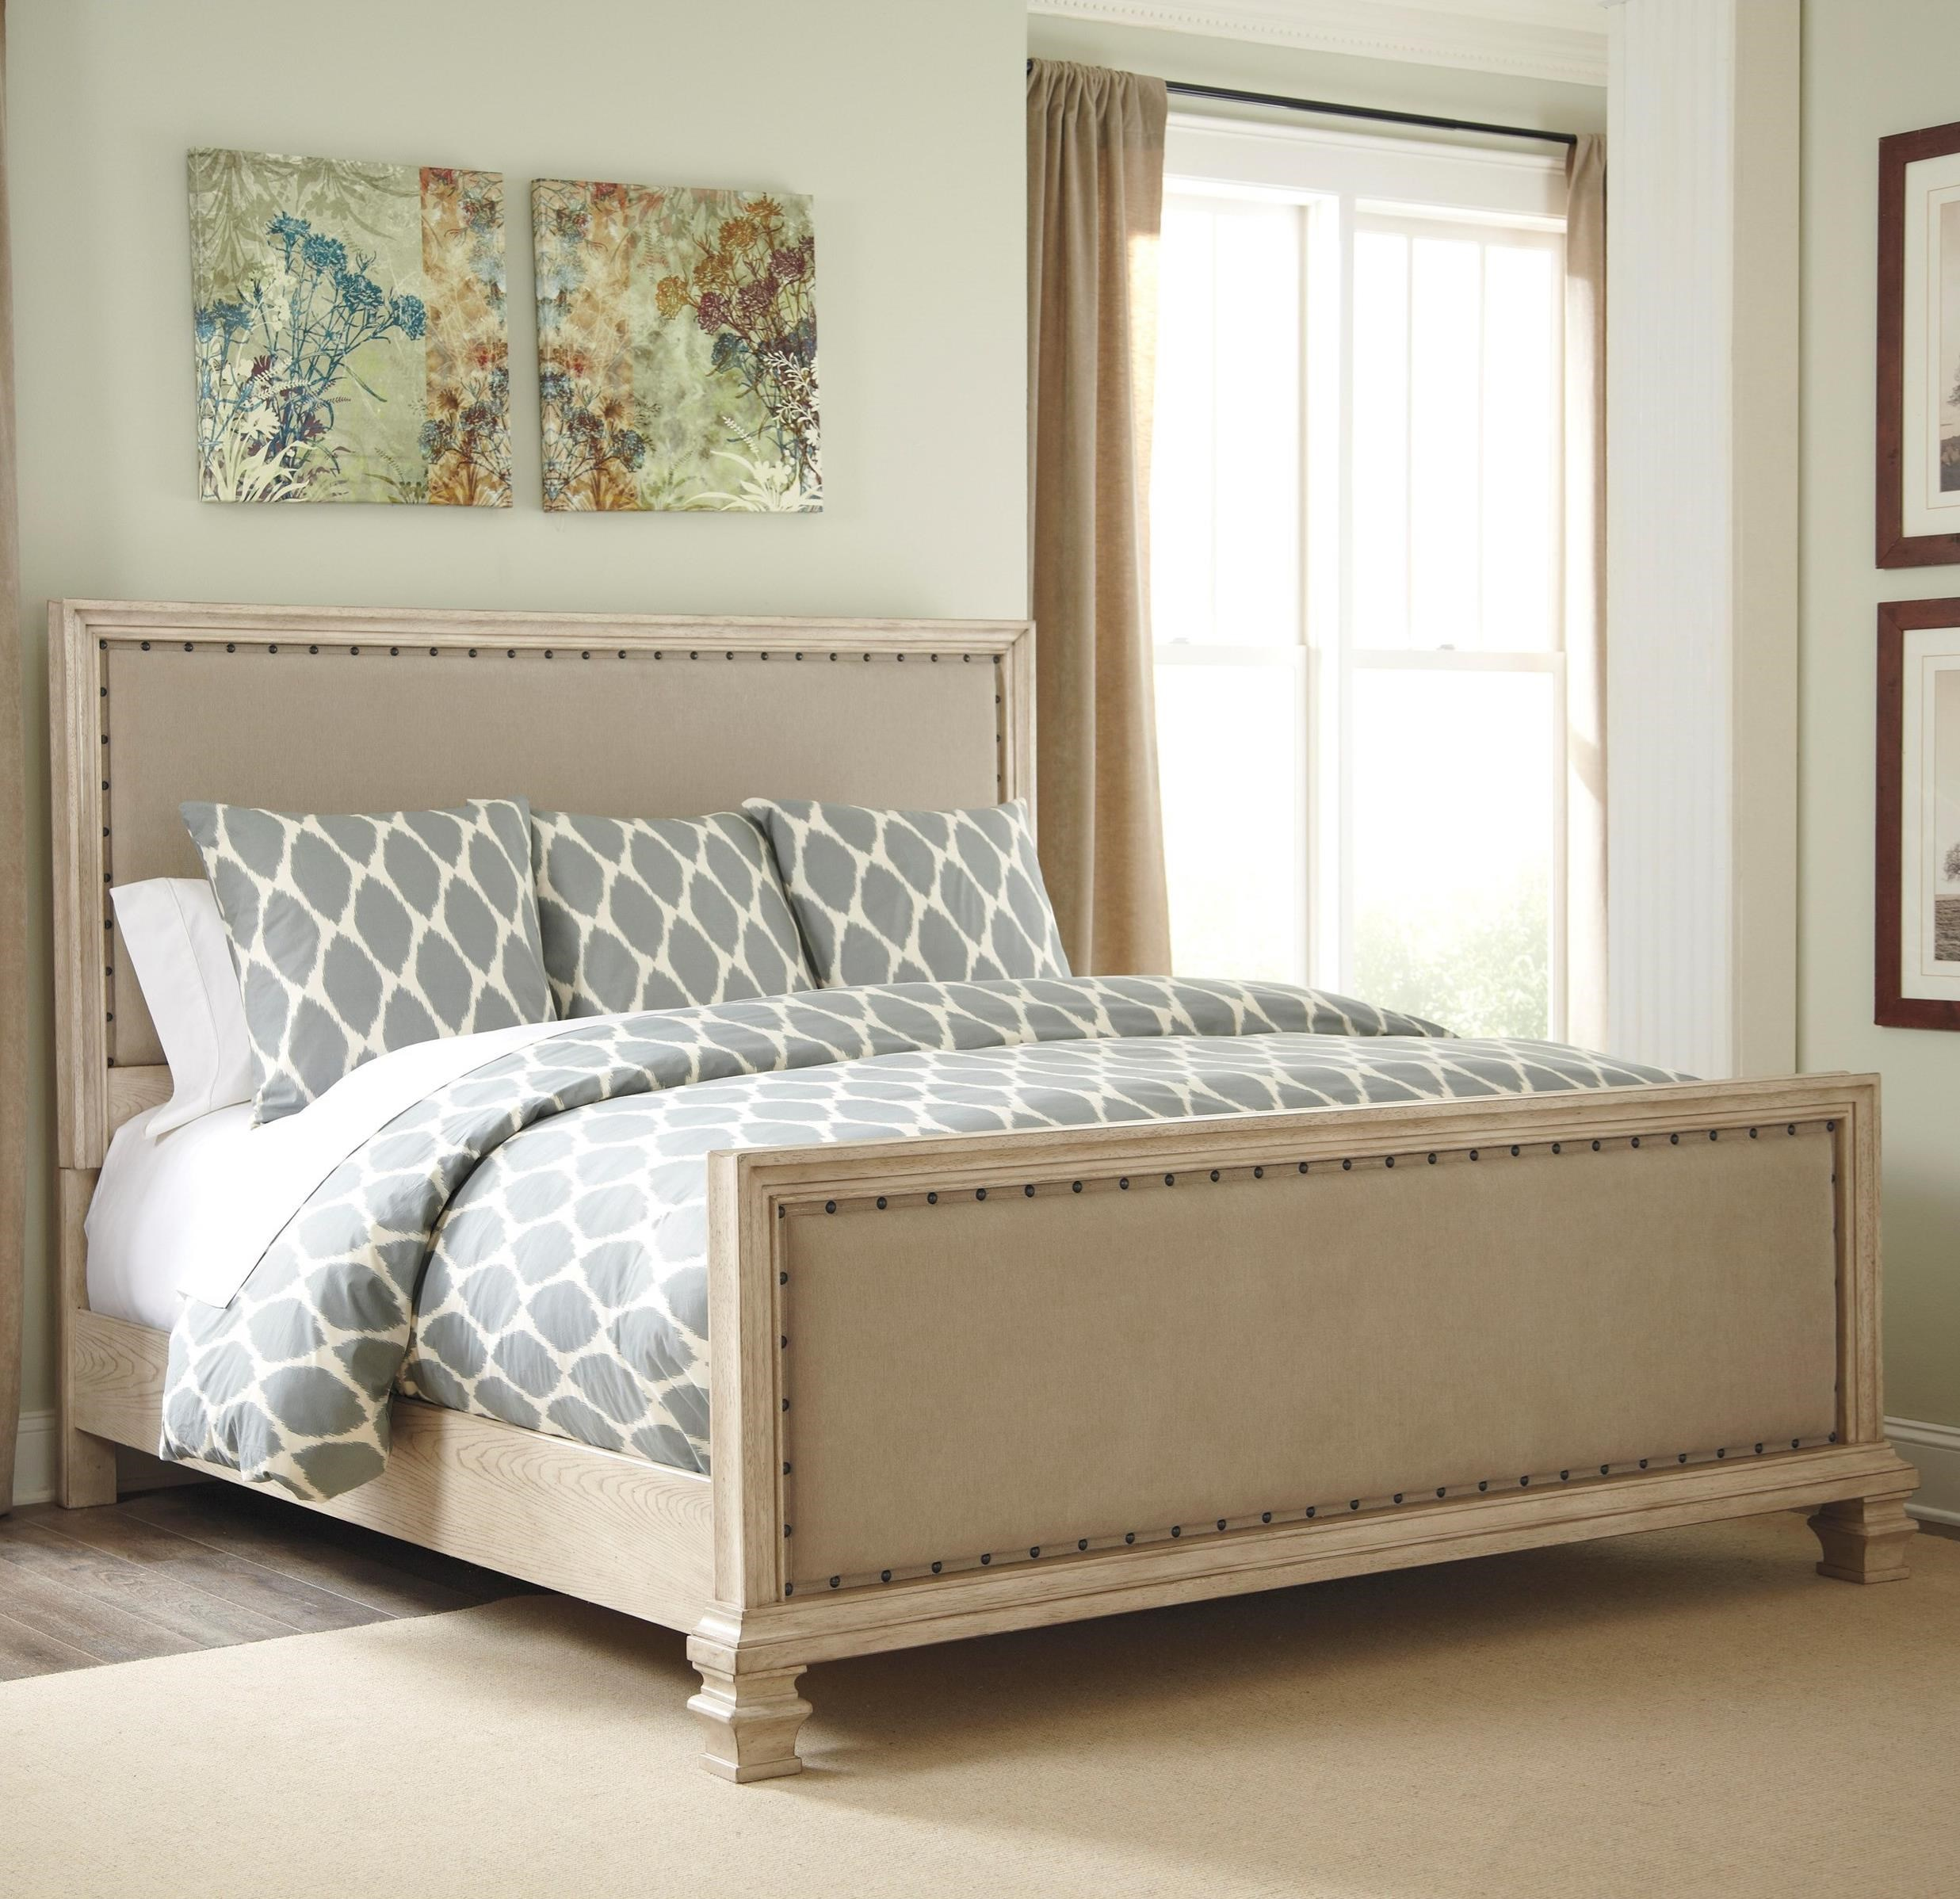 King Upholstered Panel Bed With Upholstered Footboard By